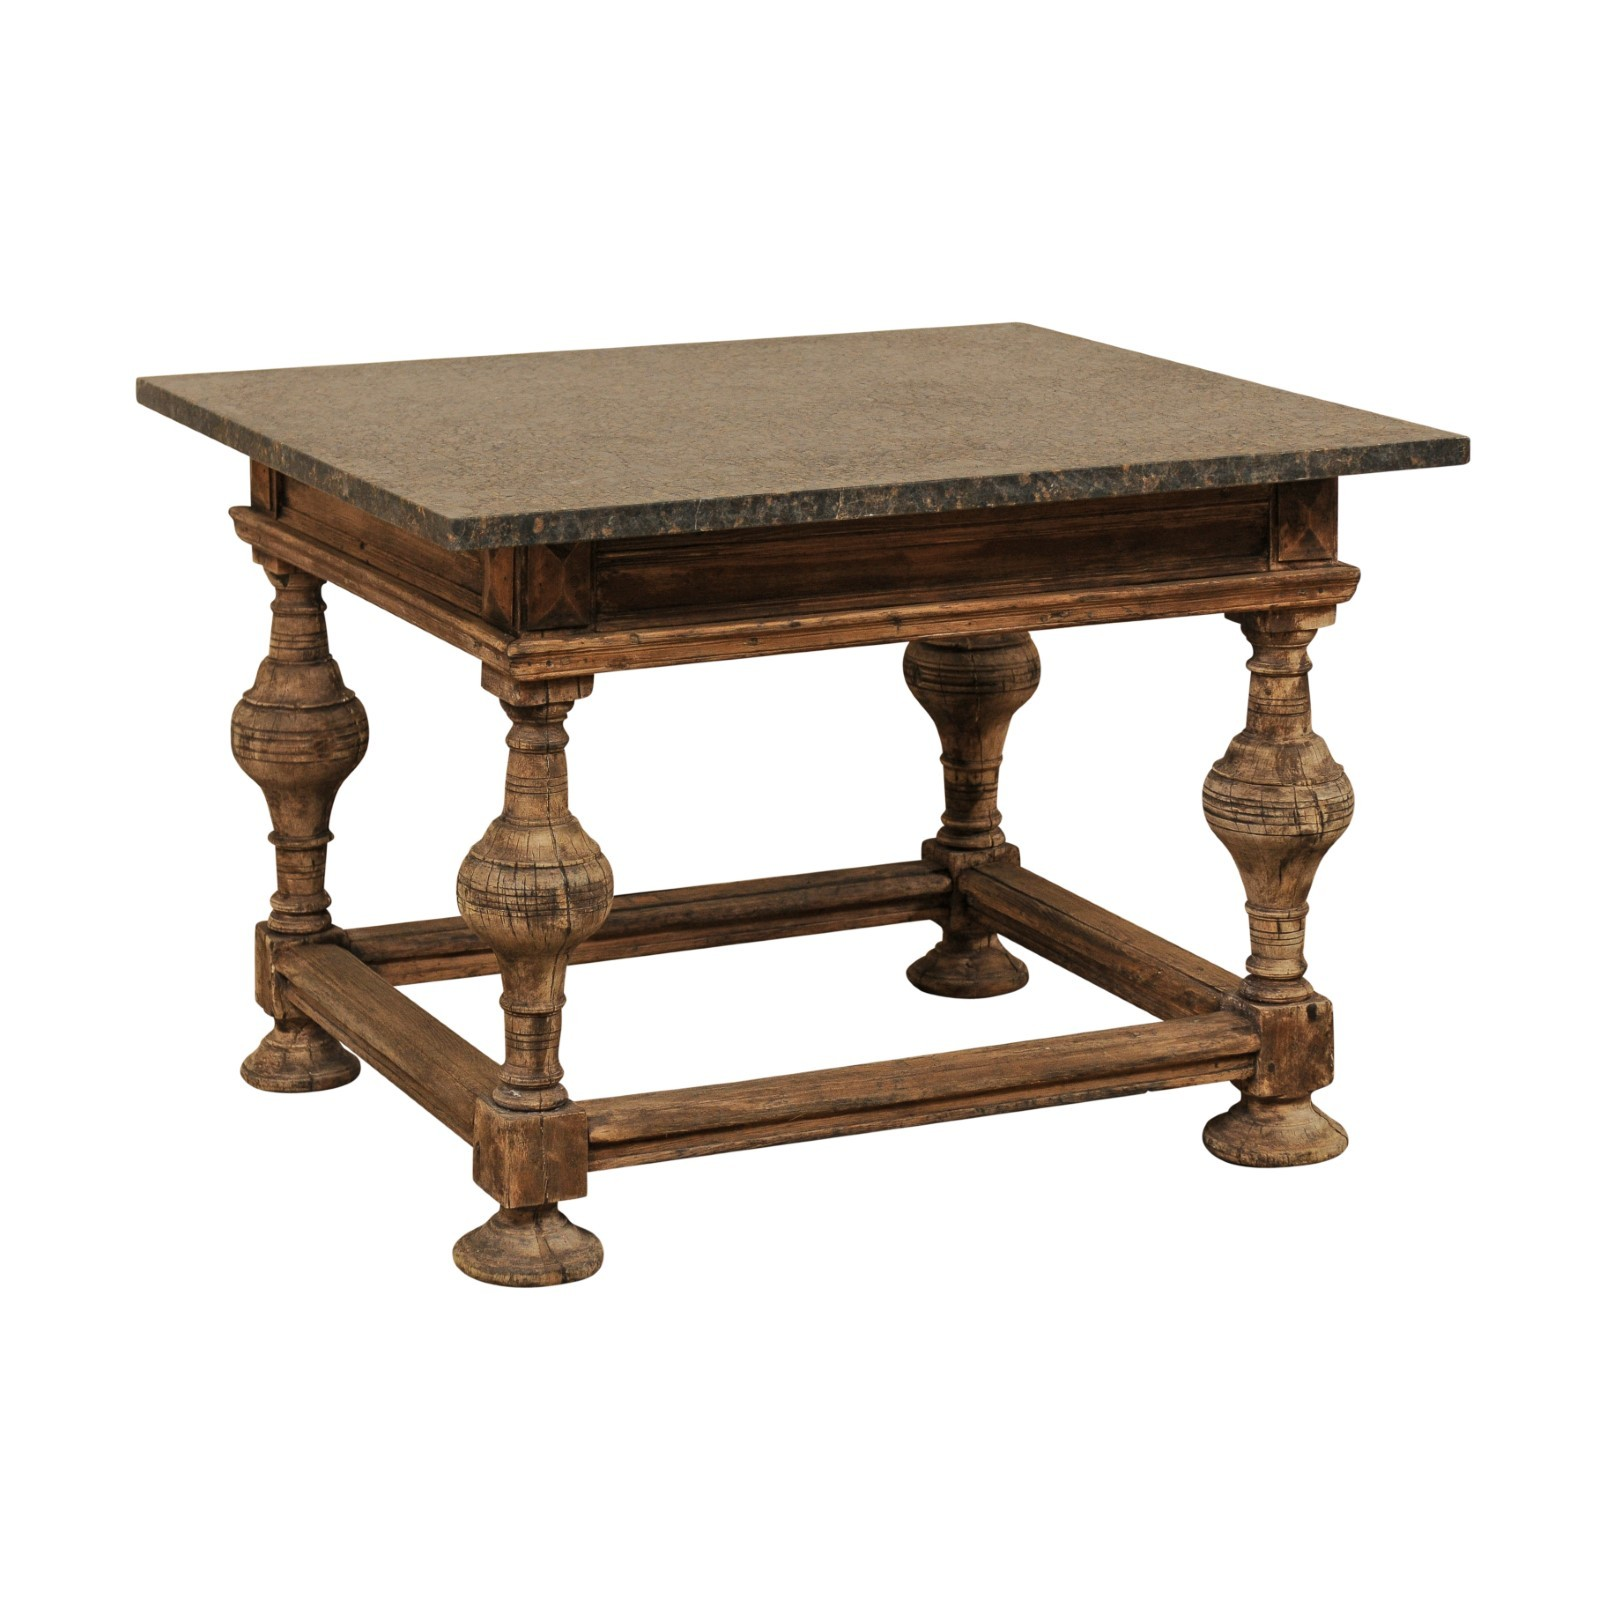 Swedish Baroque Table w/Granite Top